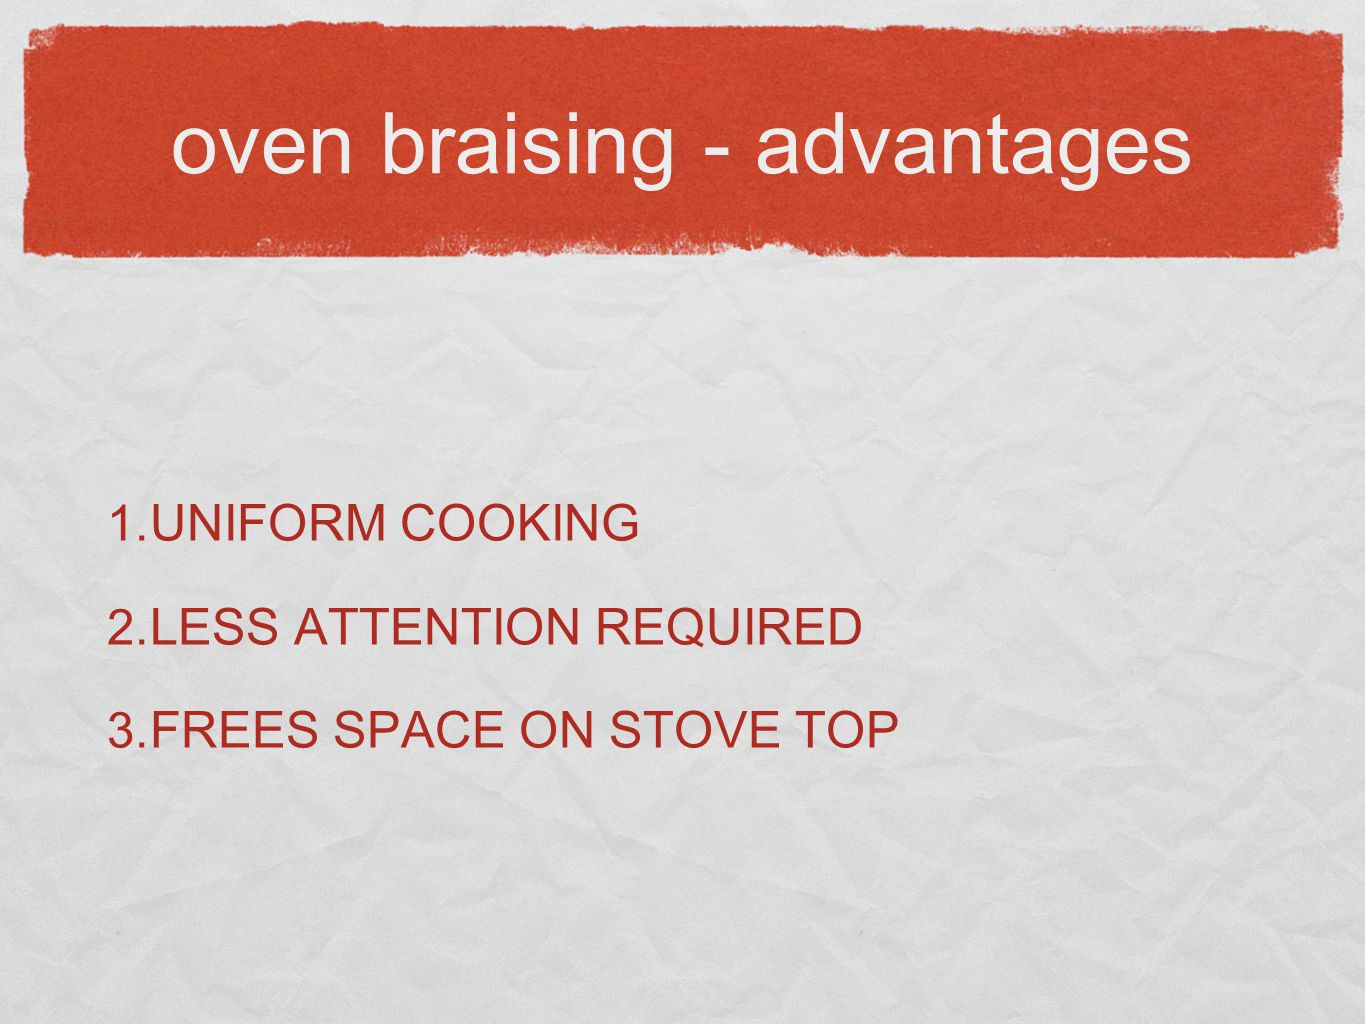 oven braising - advantages 1. UNIFORM COOKING 2. LESS ATTENTION REQUIRED 3. FREES SPACE ON STOVE TOP